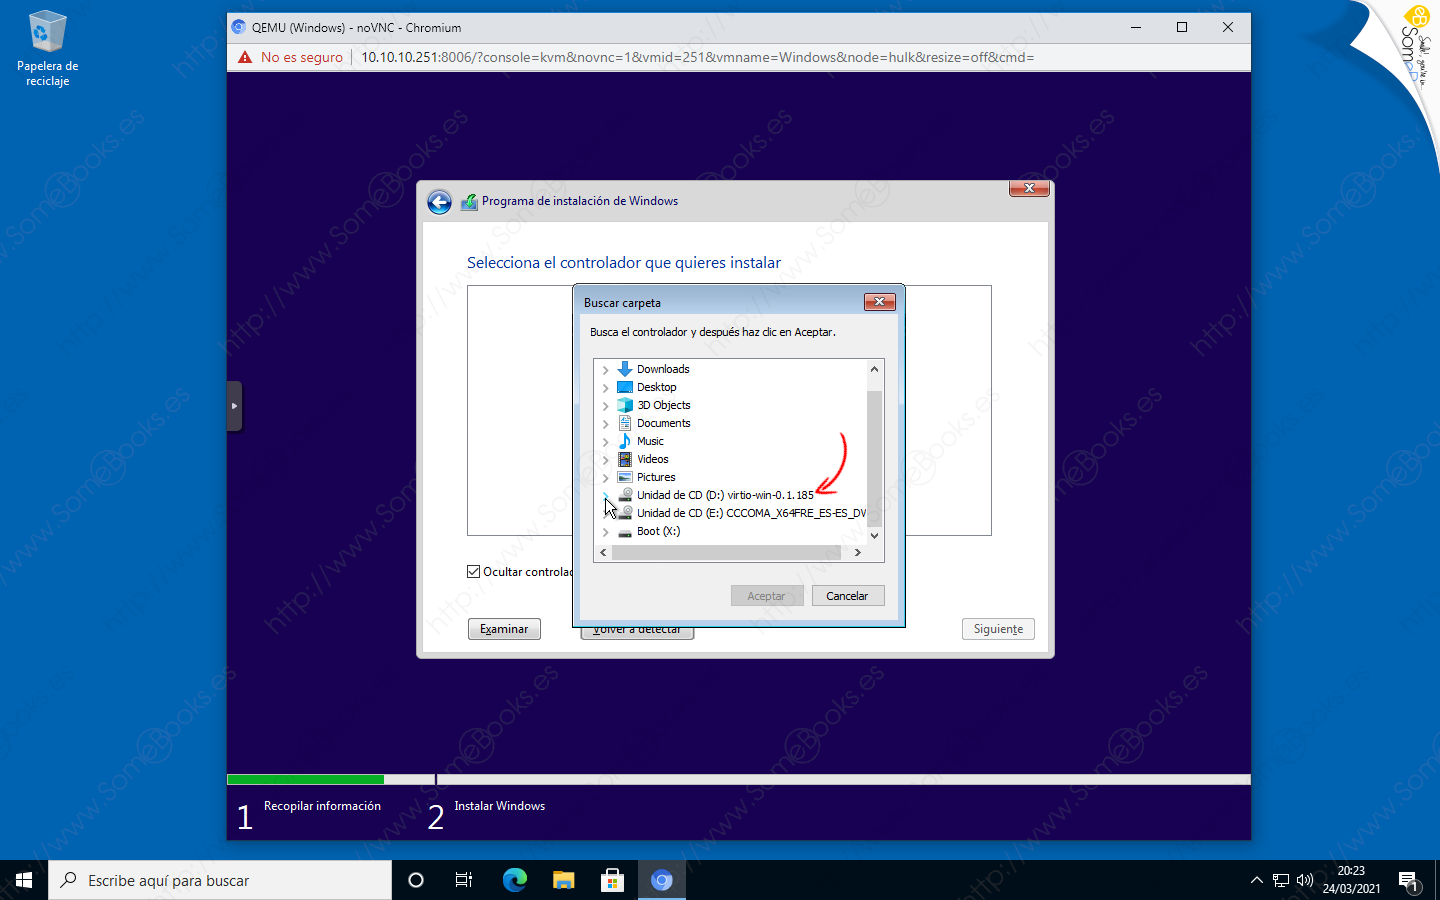 Instalar-Windows-10-en-una-maquina-virtual-sobre-Proxmox-VE-006